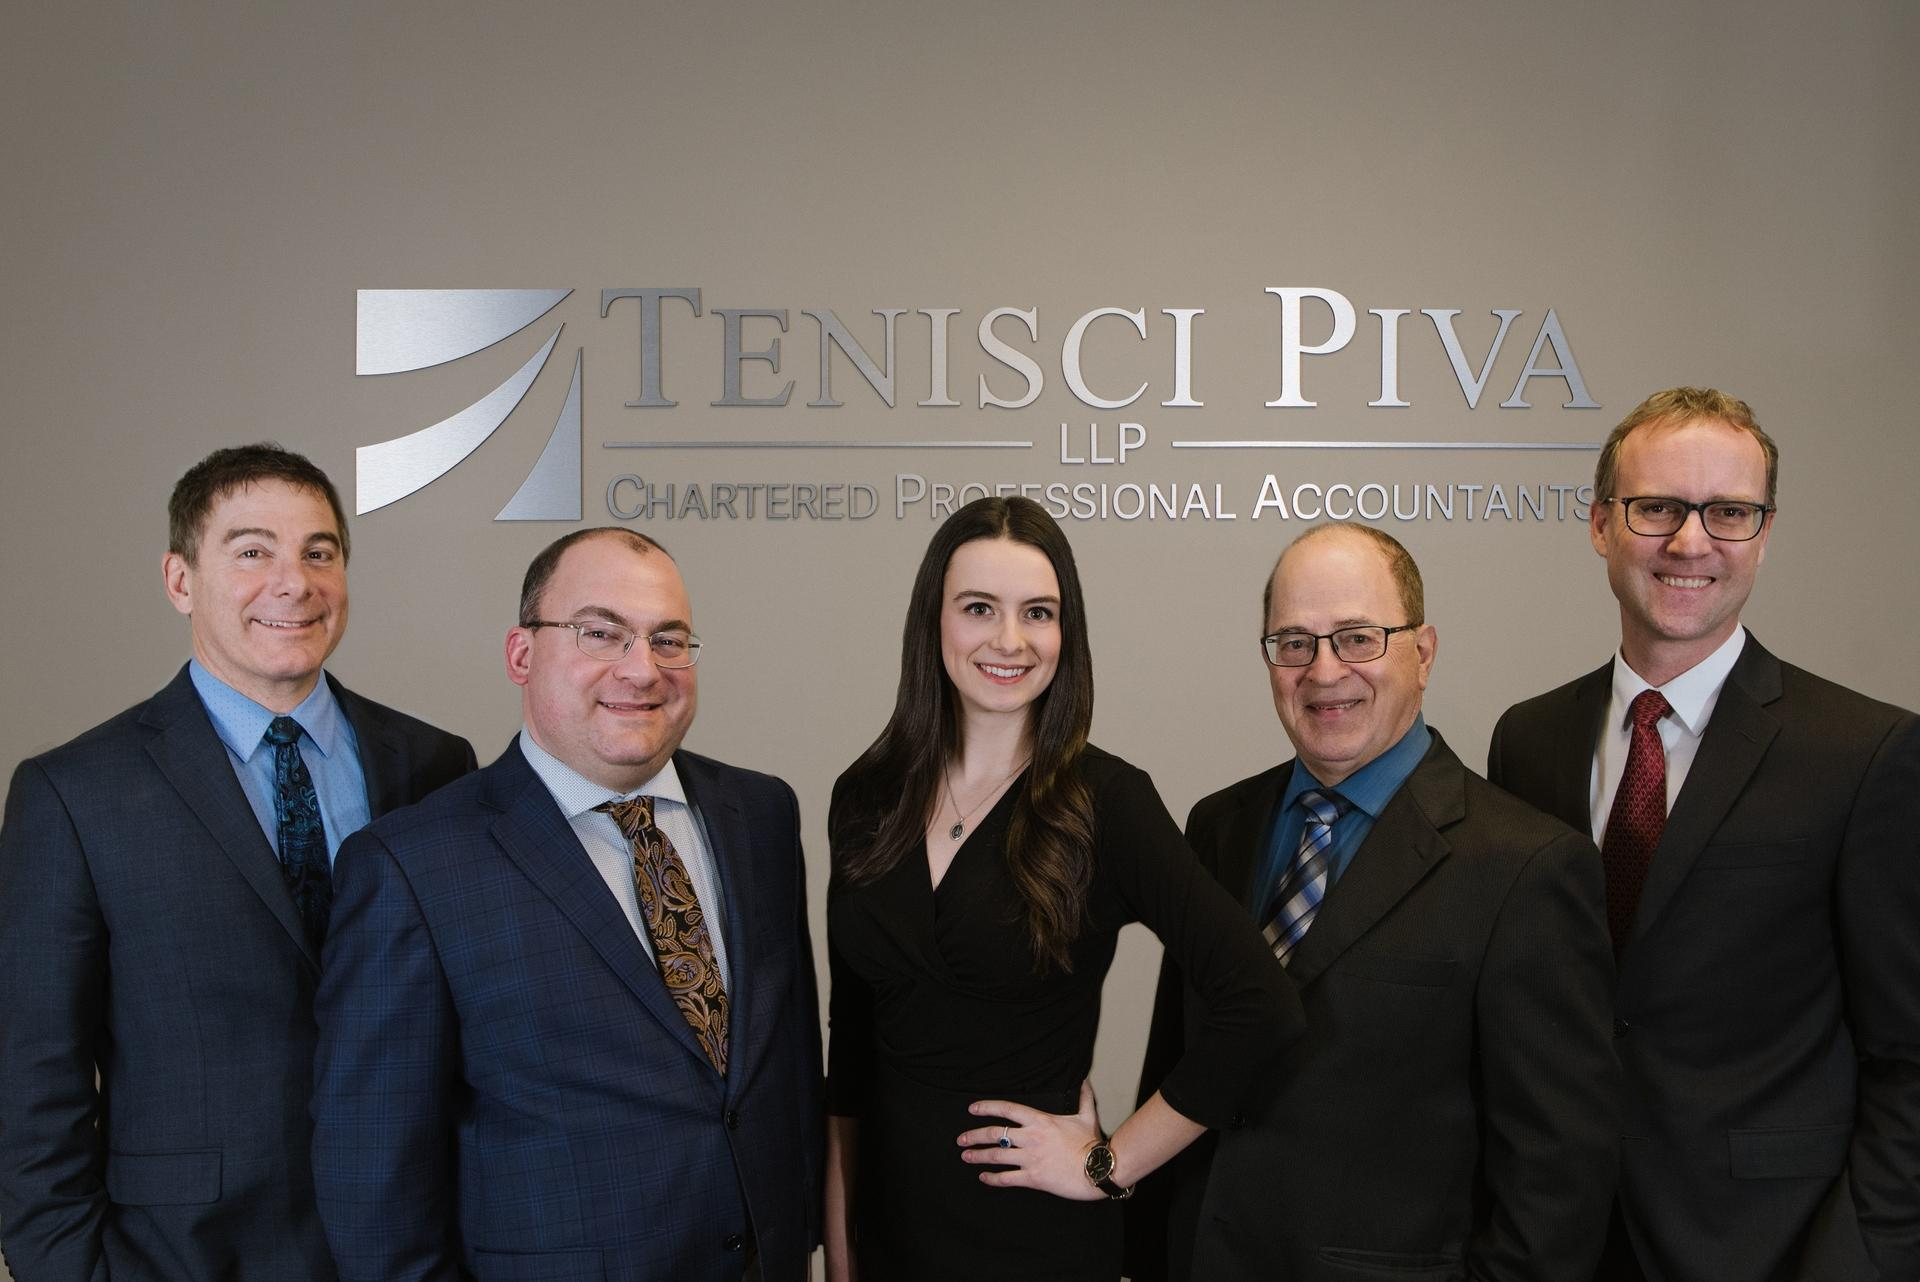 Siena Aberdeen and the Partners at Teniscipiva